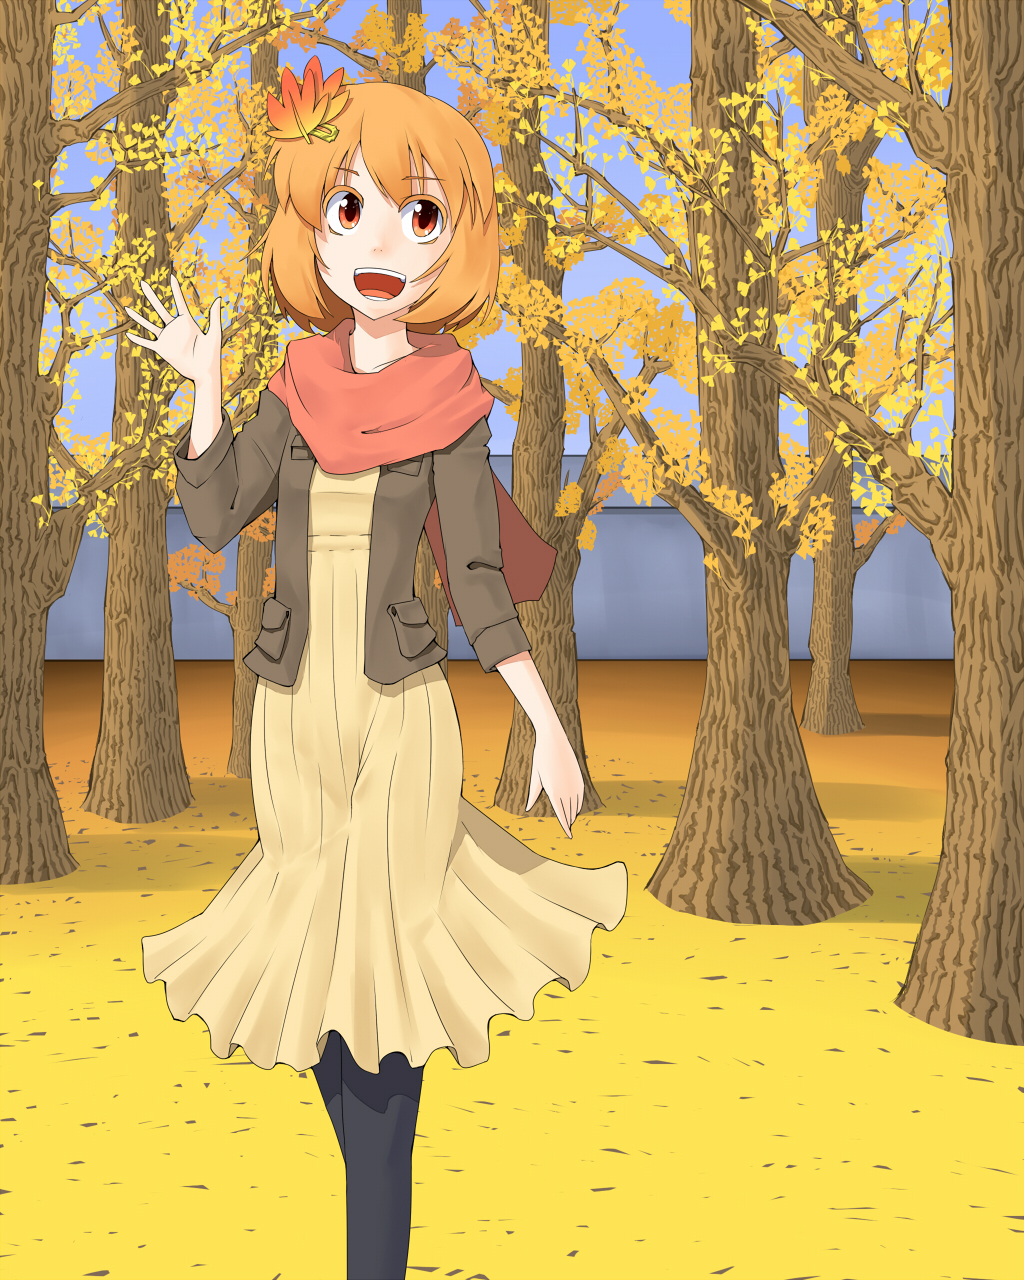 aki_shizuha autumn black_legwear blonde_hair dress futomashio hair_ornament hairclip highres leaf leaf_on_head open_mouth orange_eyes pantyhose scarf short_hair smile solo teeth touhou tree vest waving